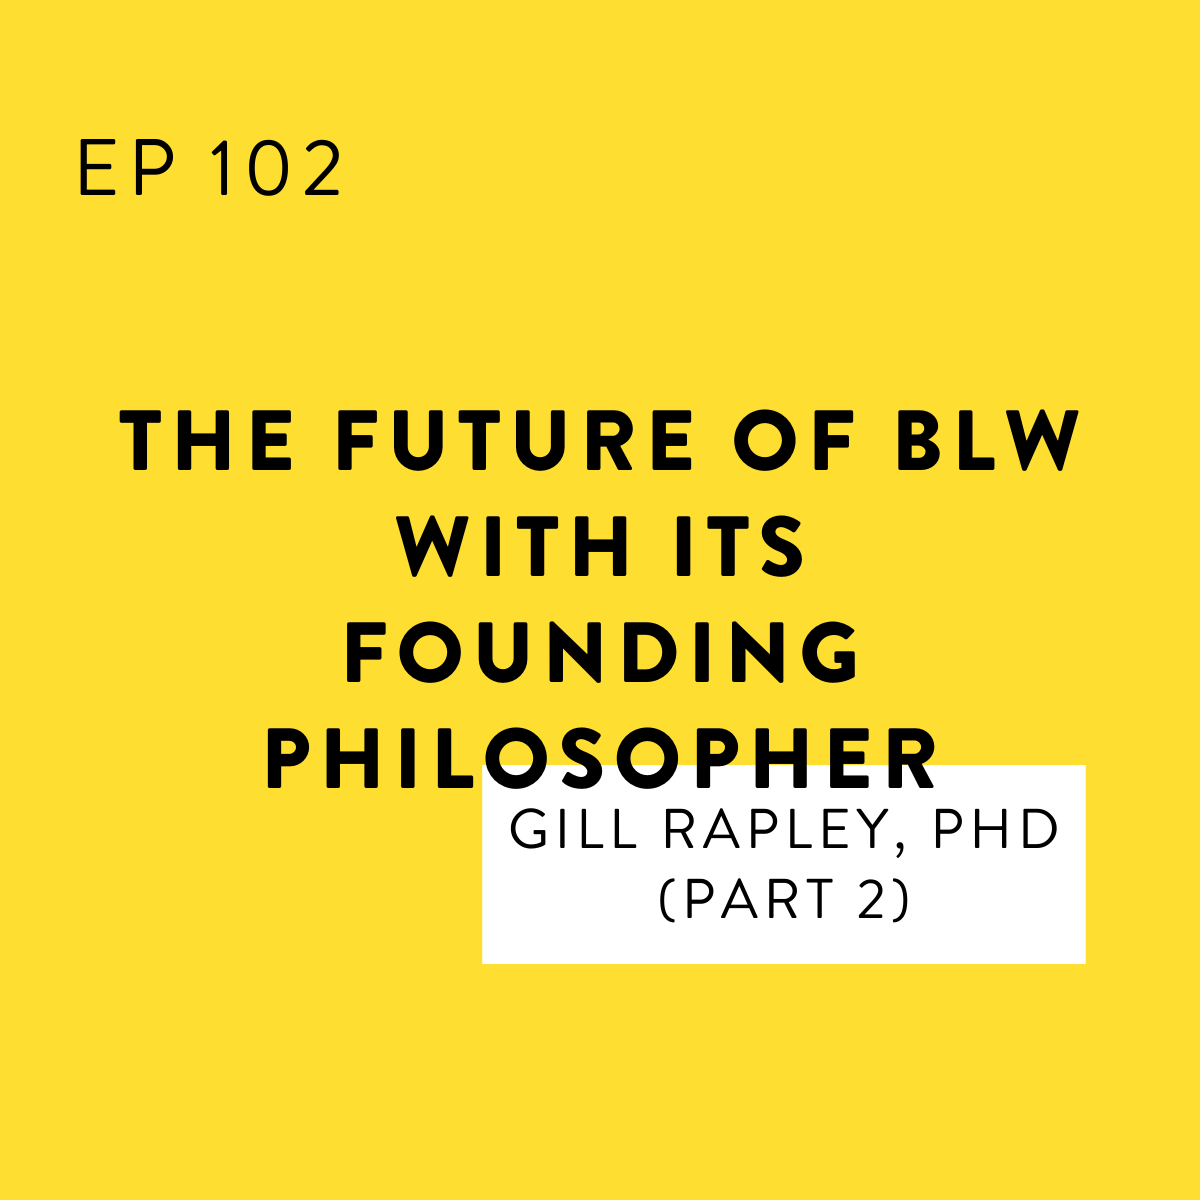 The Future of BLW with its Founding Philosopher Gill Rapley, PhD (Part 2)